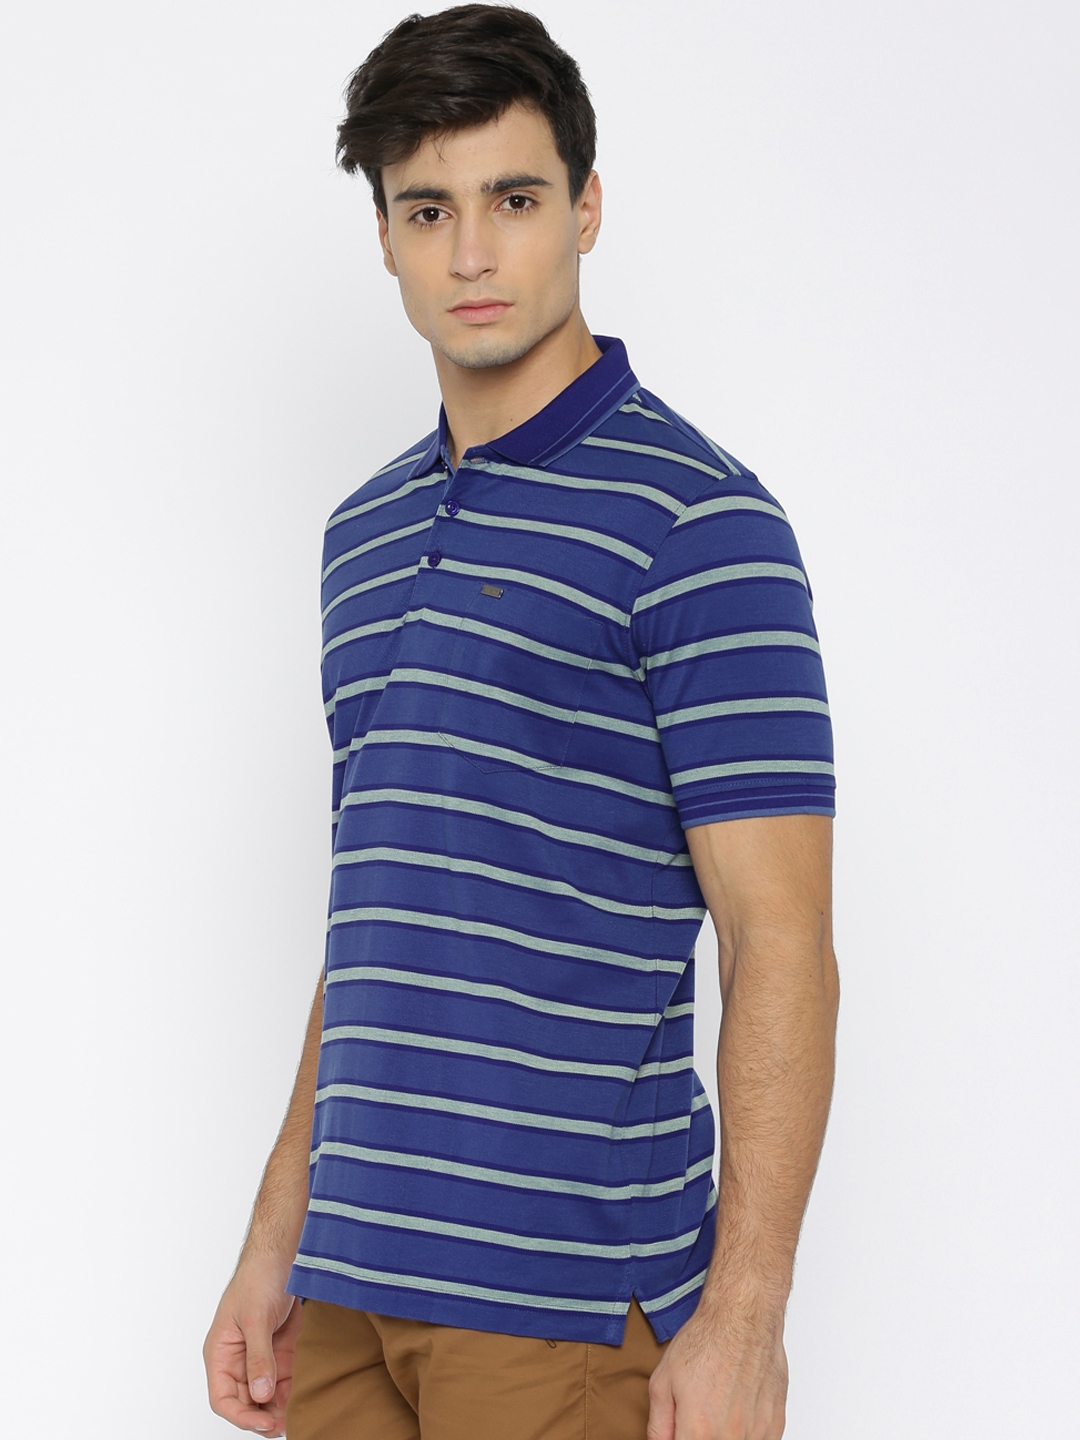 55dbfbed Buy Park Avenue Men Blue Striped Slim Fit Polo T Shirt - Tshirts for ...